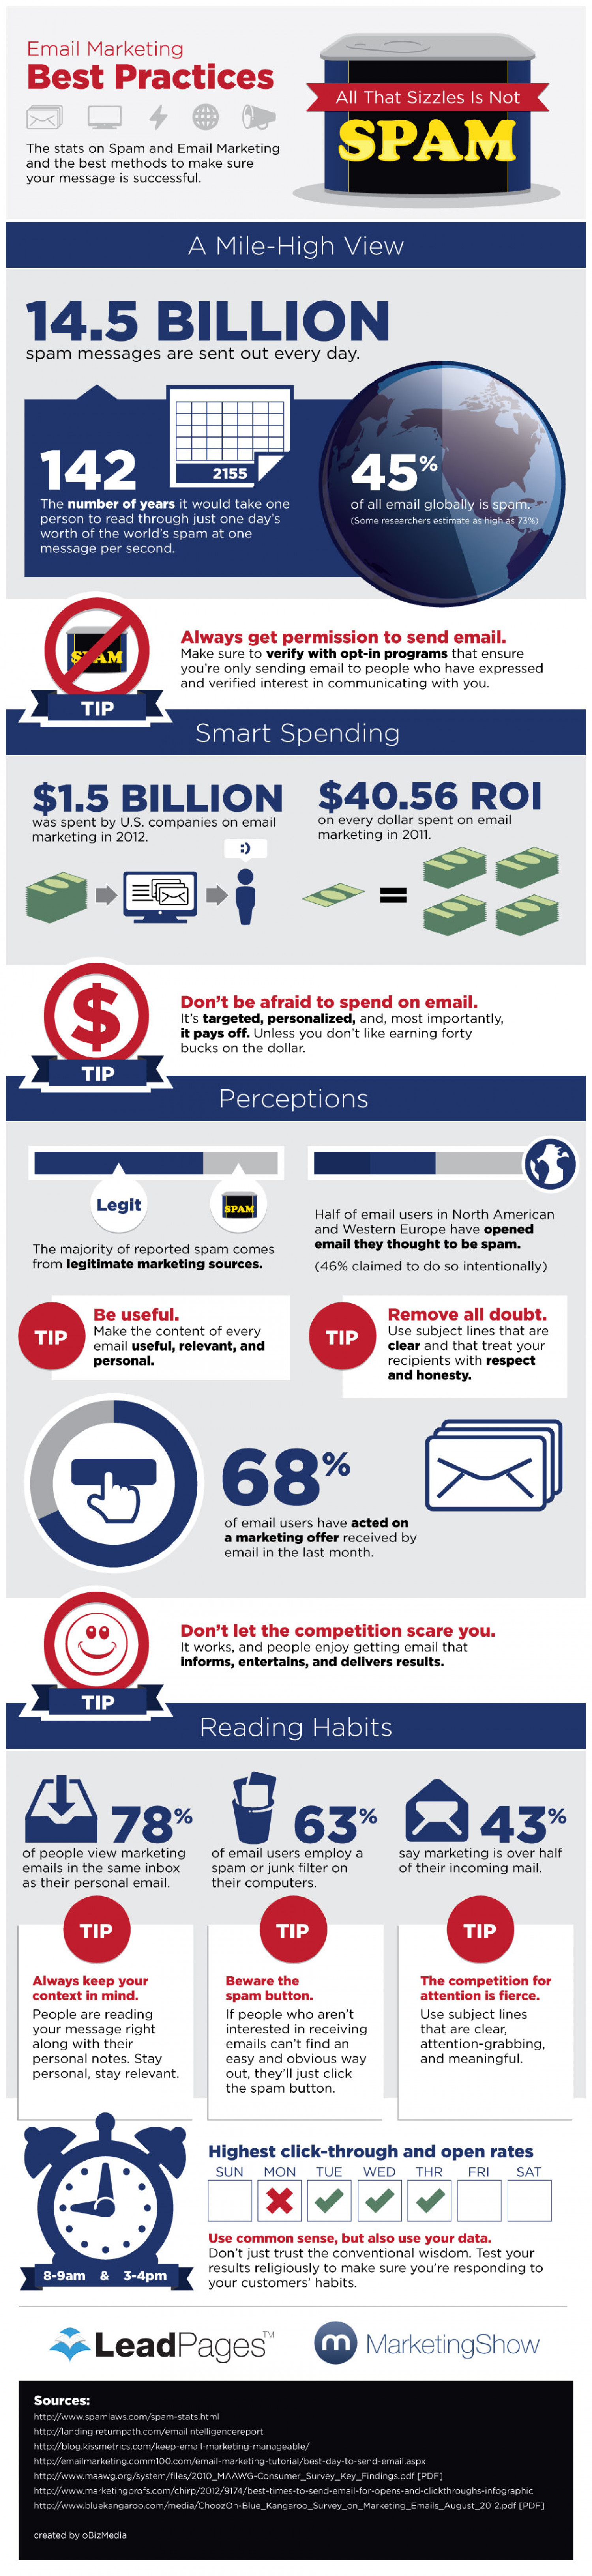 Email Marketing: All That Sizzles Is Not Spam Infographic